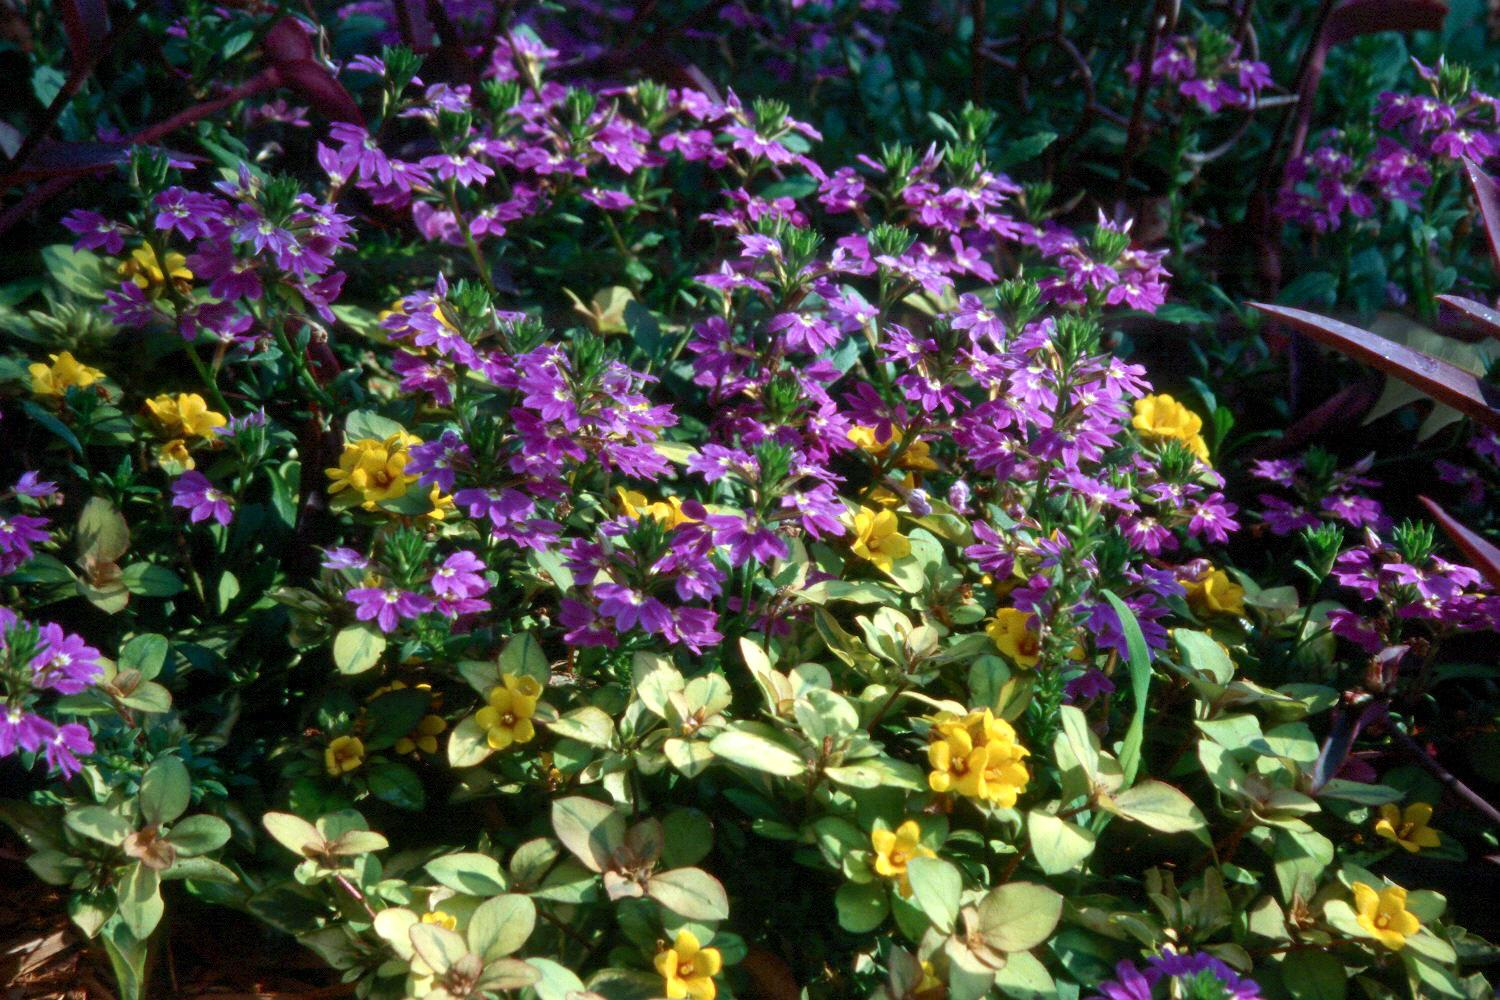 The Outback Sunset lysimachia with its yellow and green variegated foliage and yellow-orange, bell-shaped flowers is a spreading ground cover that combines wonderfully with plants like New Wonder scaevola.